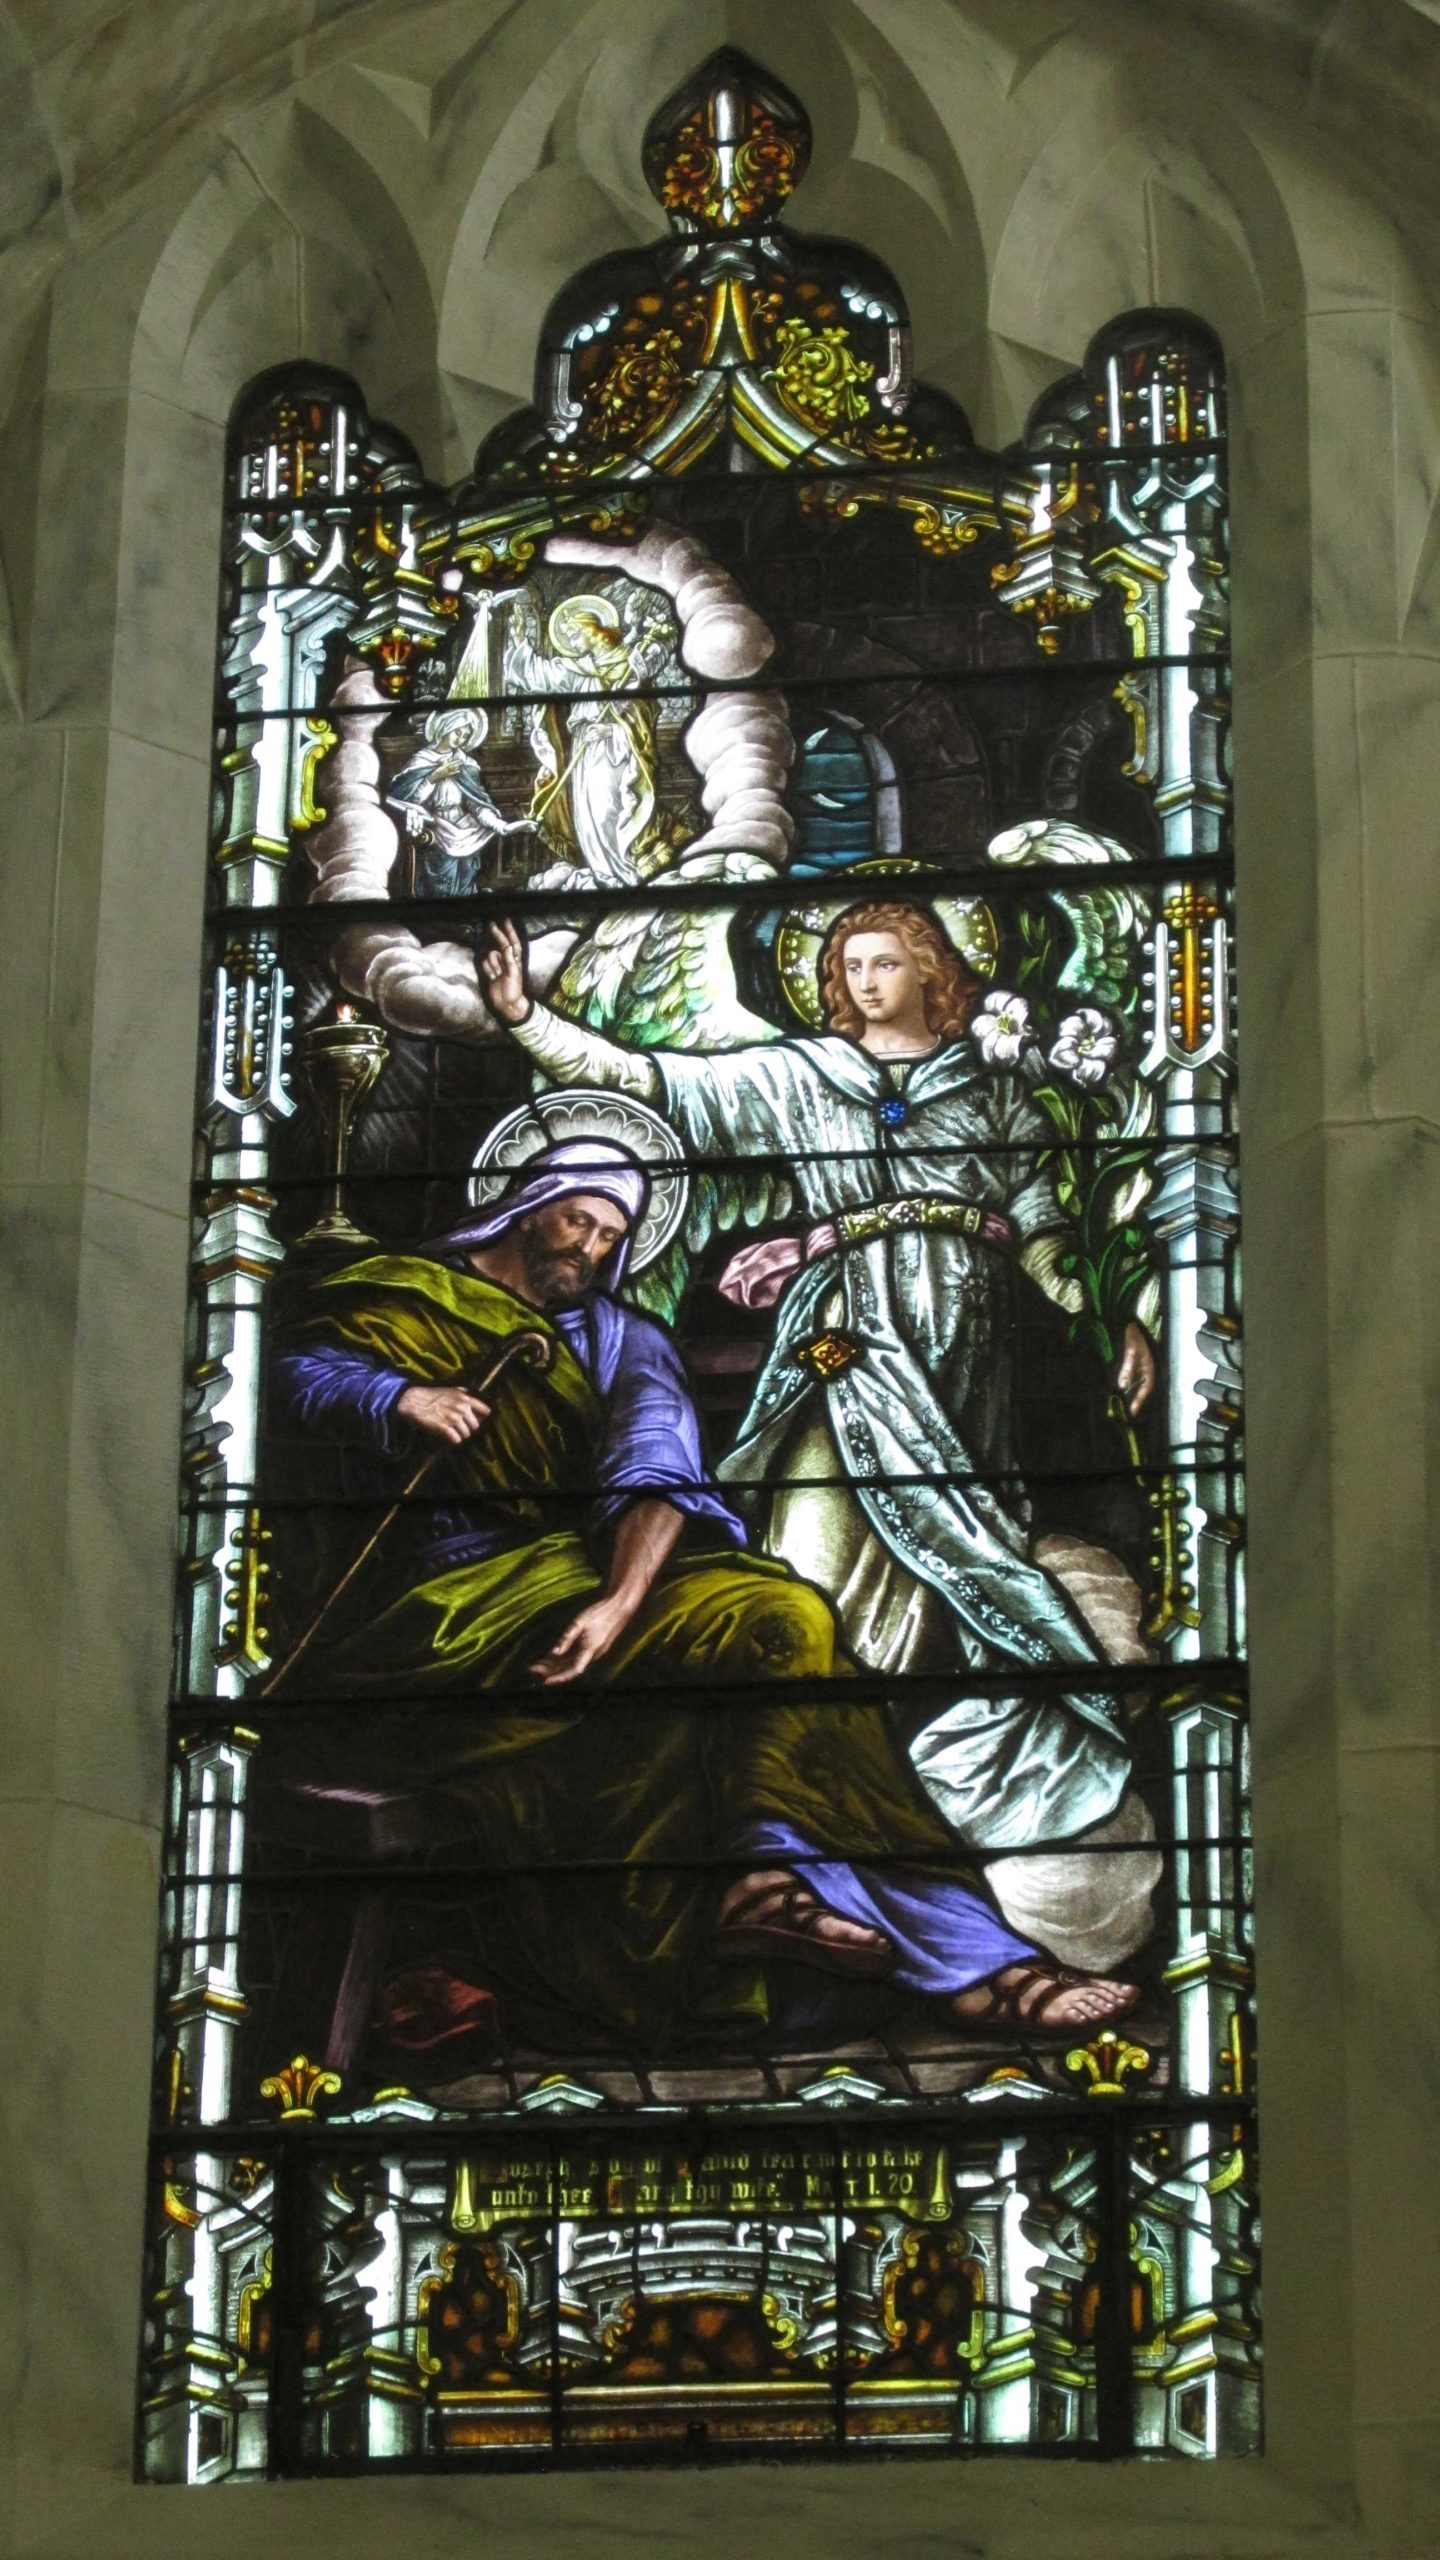 St. Joseph Dream - Basilica of St. Mary of the Angels